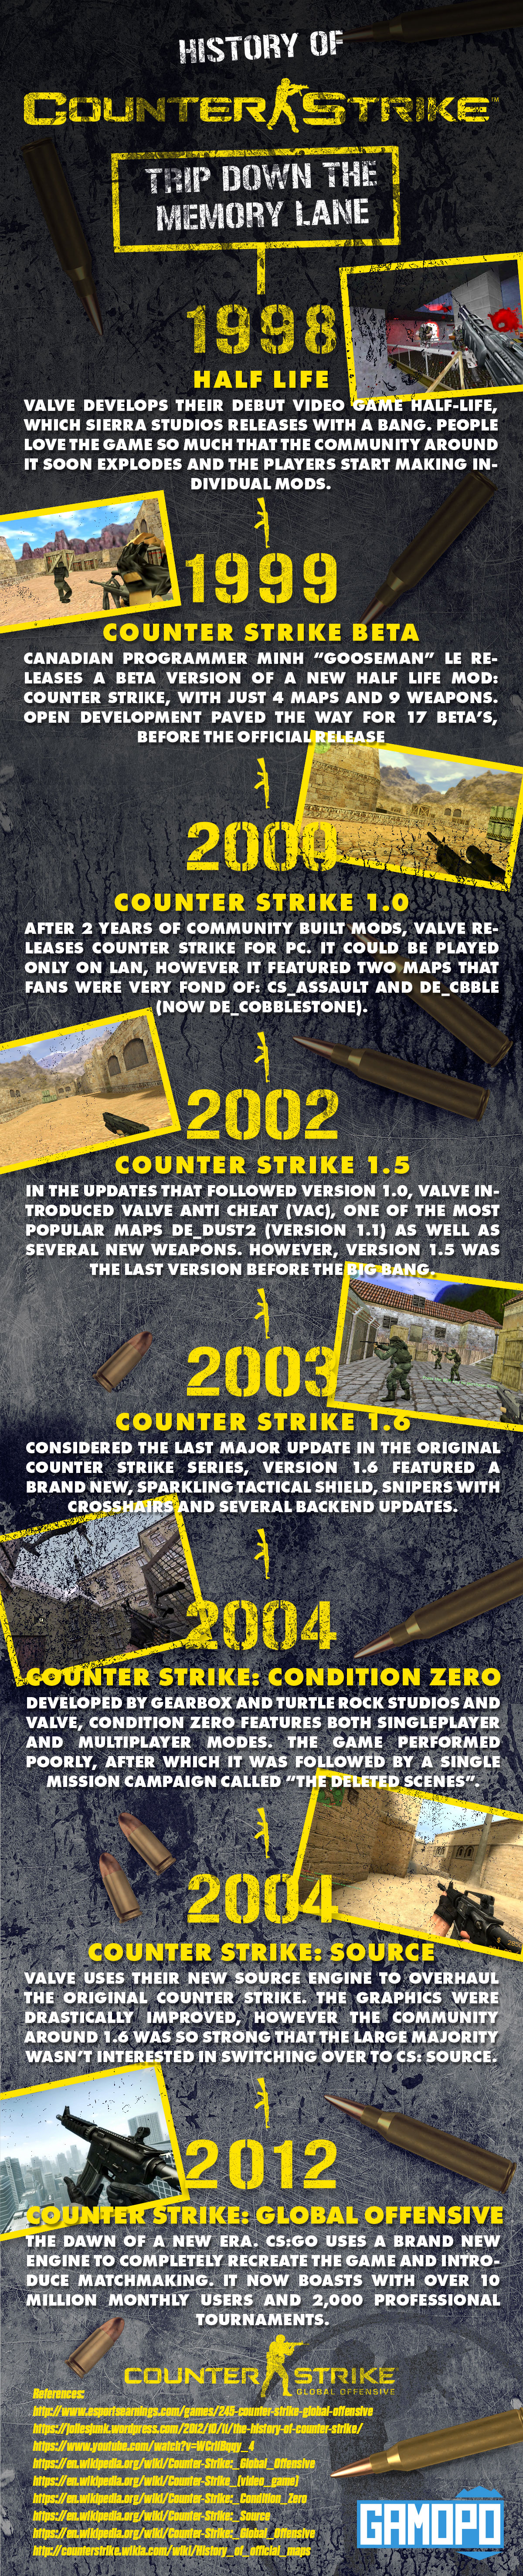 History of Counter Strike - Infographic